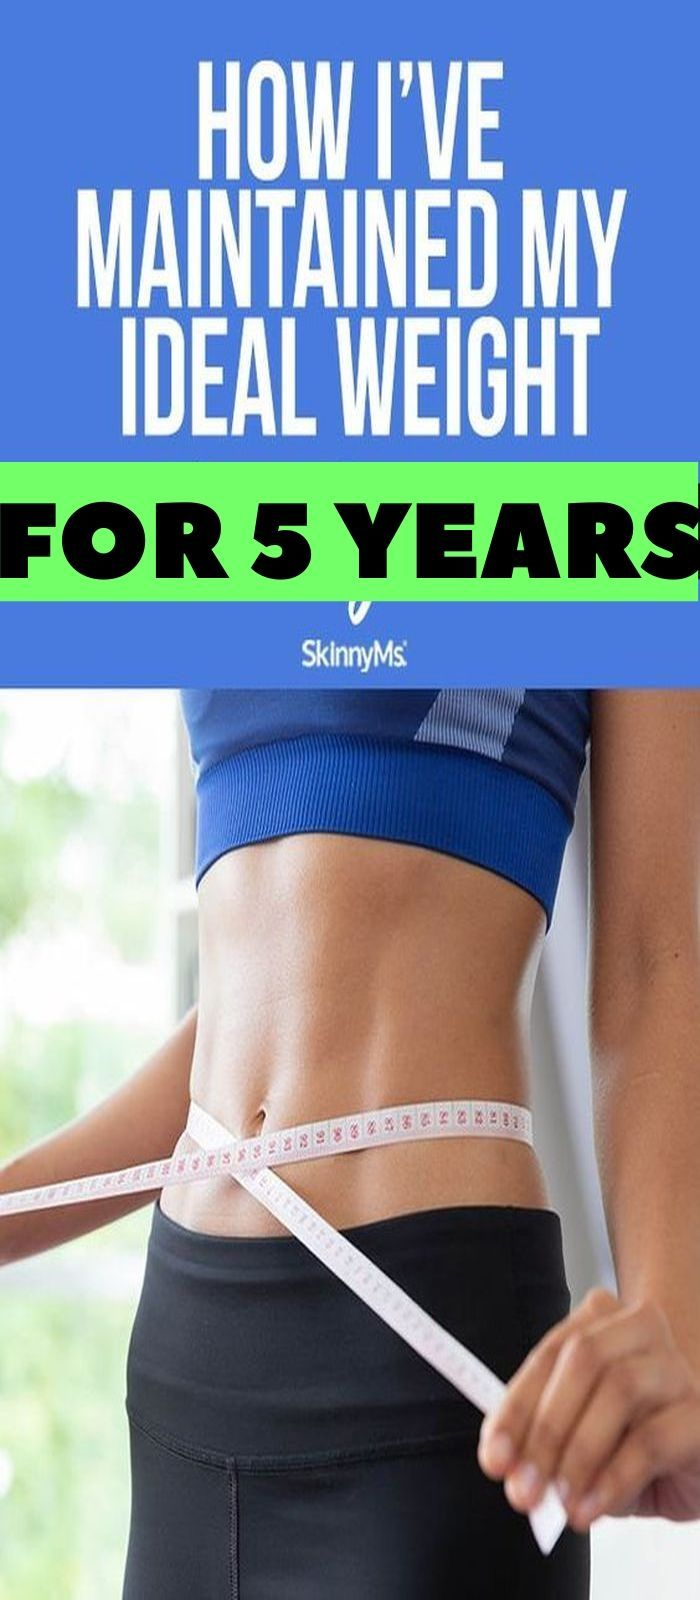 Ideal Body Weight Calculator In 2020 Ideal Body Weight Health Ideal Body